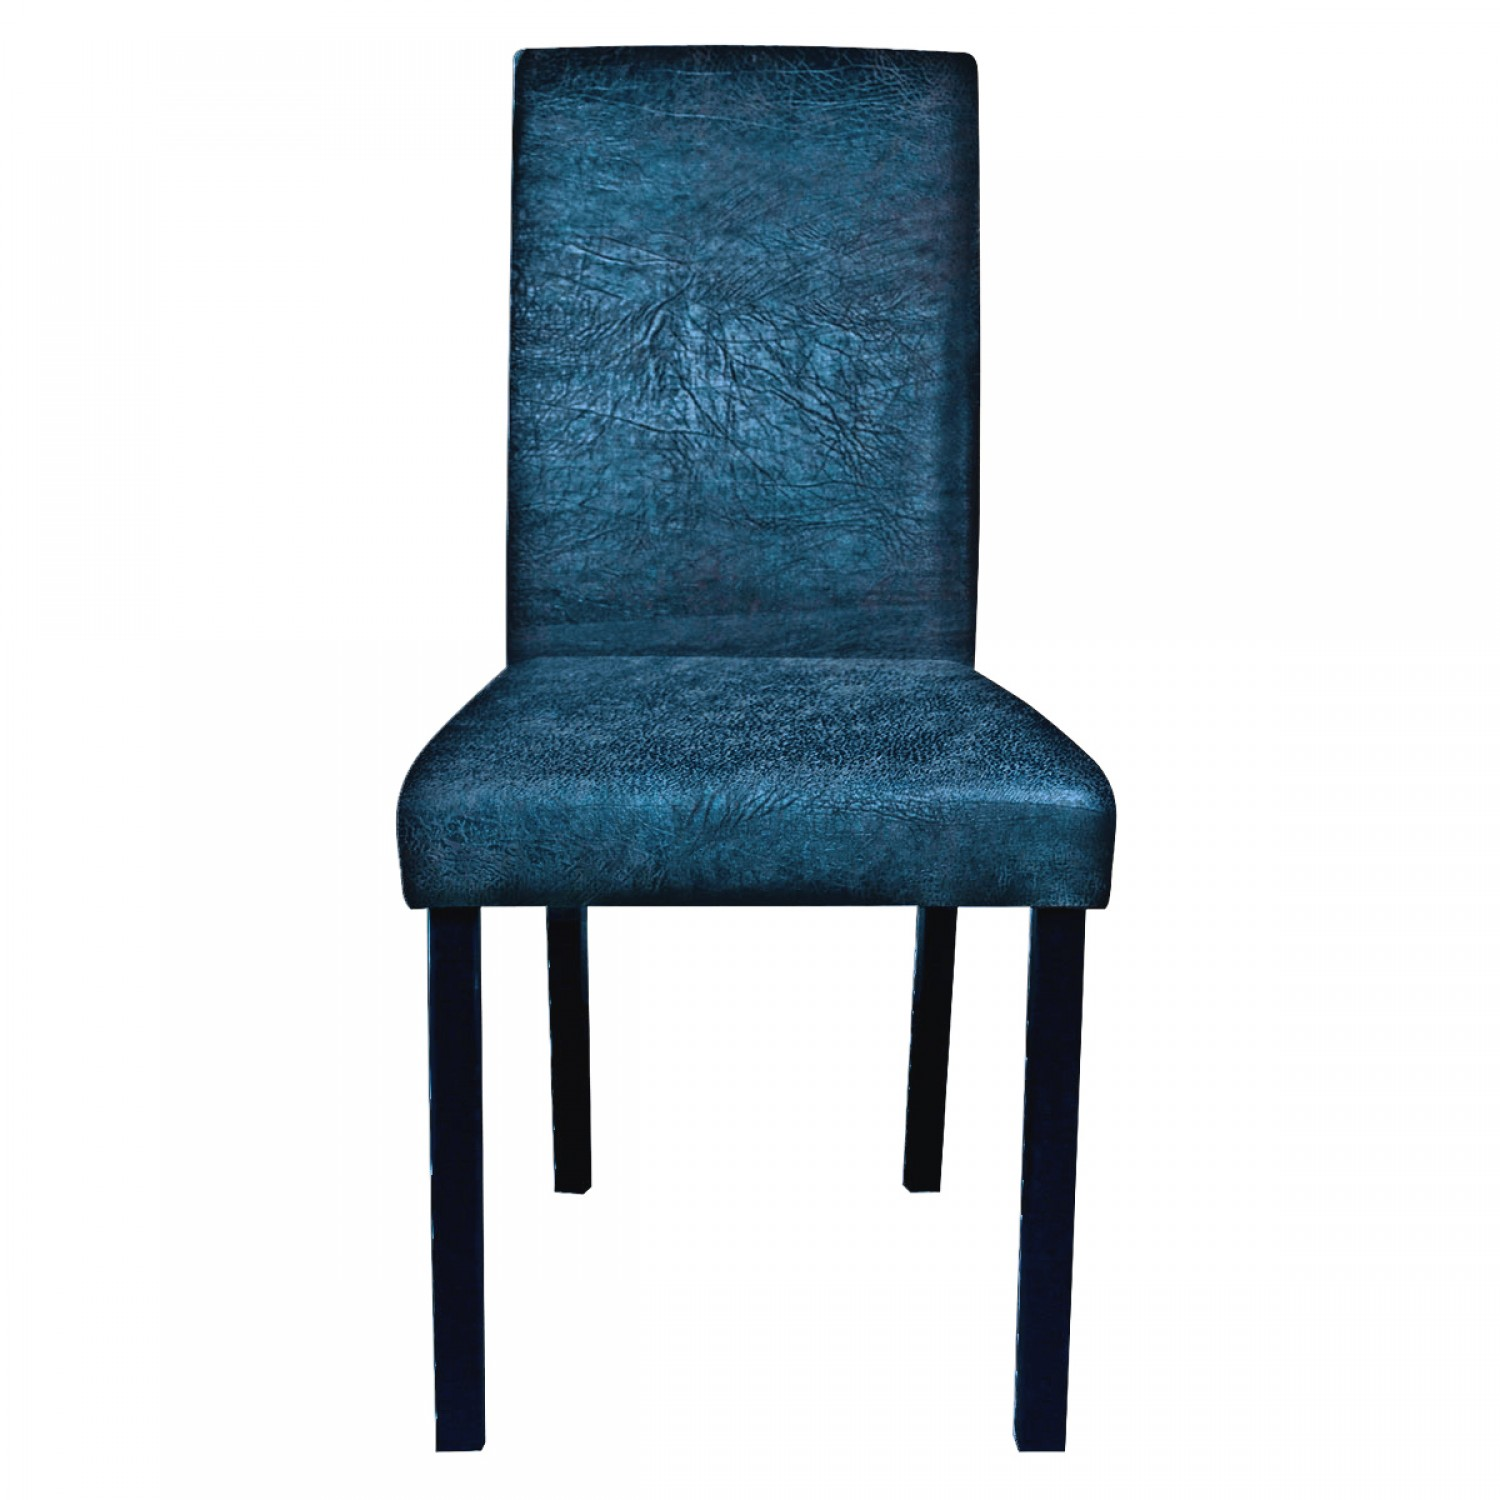 Largeur Bar Pour Manger Chaise De Salon Bleue (lot De 2) - Koya Design